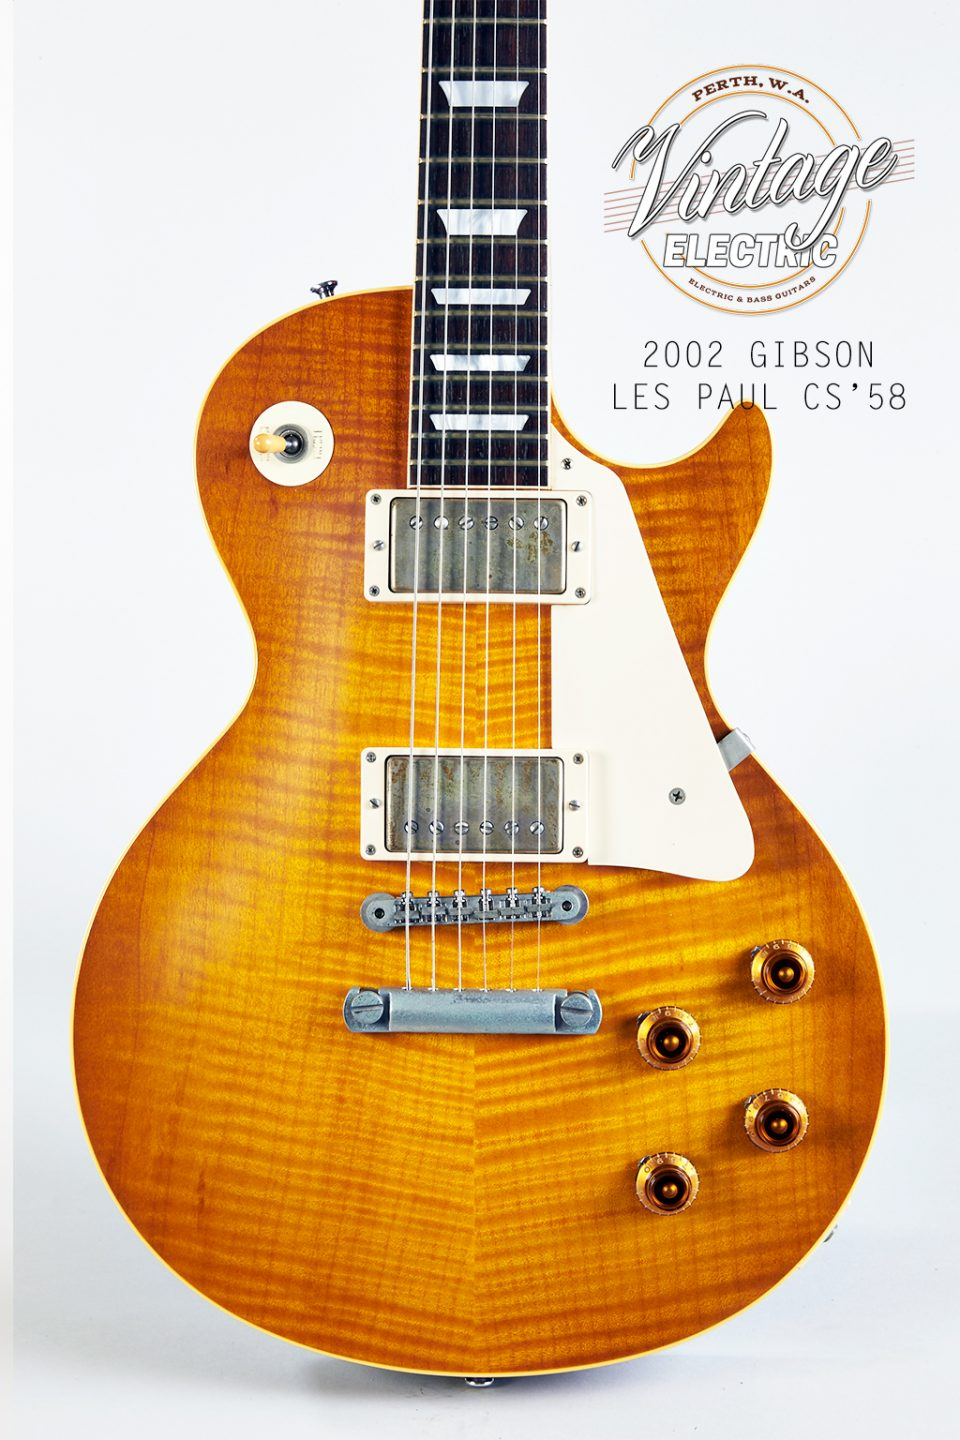 2002 Gibson Les Paul 58 Reissue Body